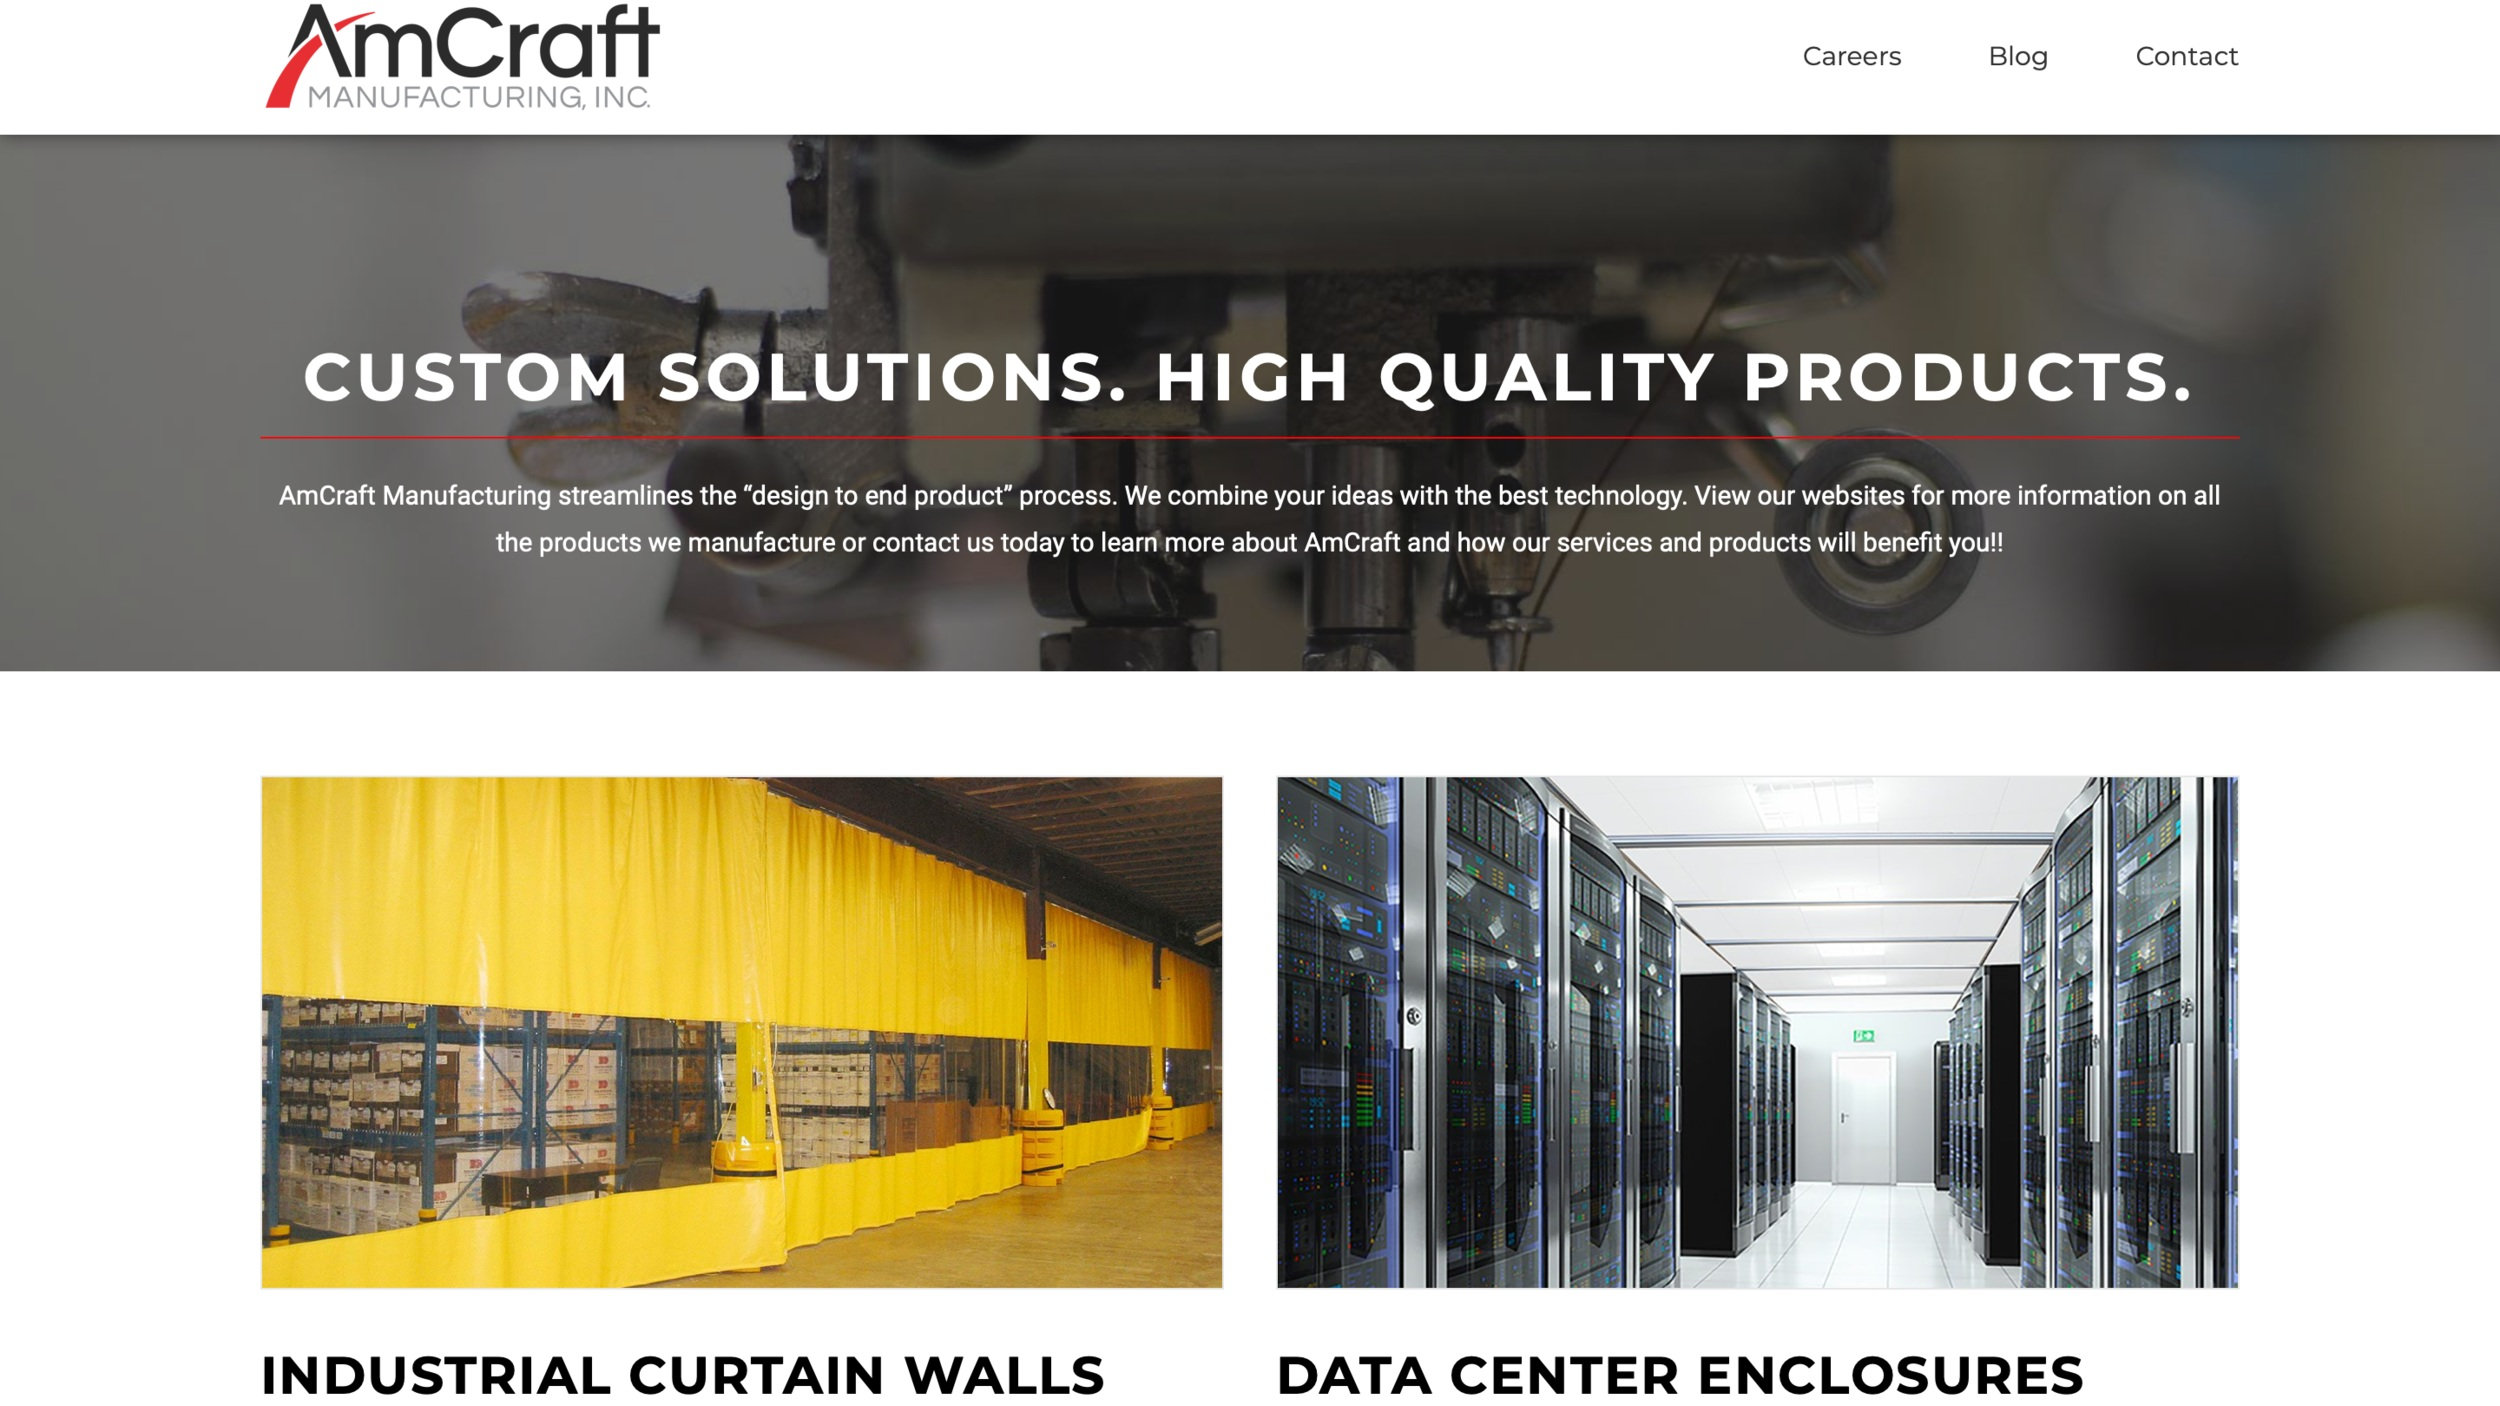 Small business digital marketing for industrial and manufacturing industries. https://www.amcraftmanufacturing.com